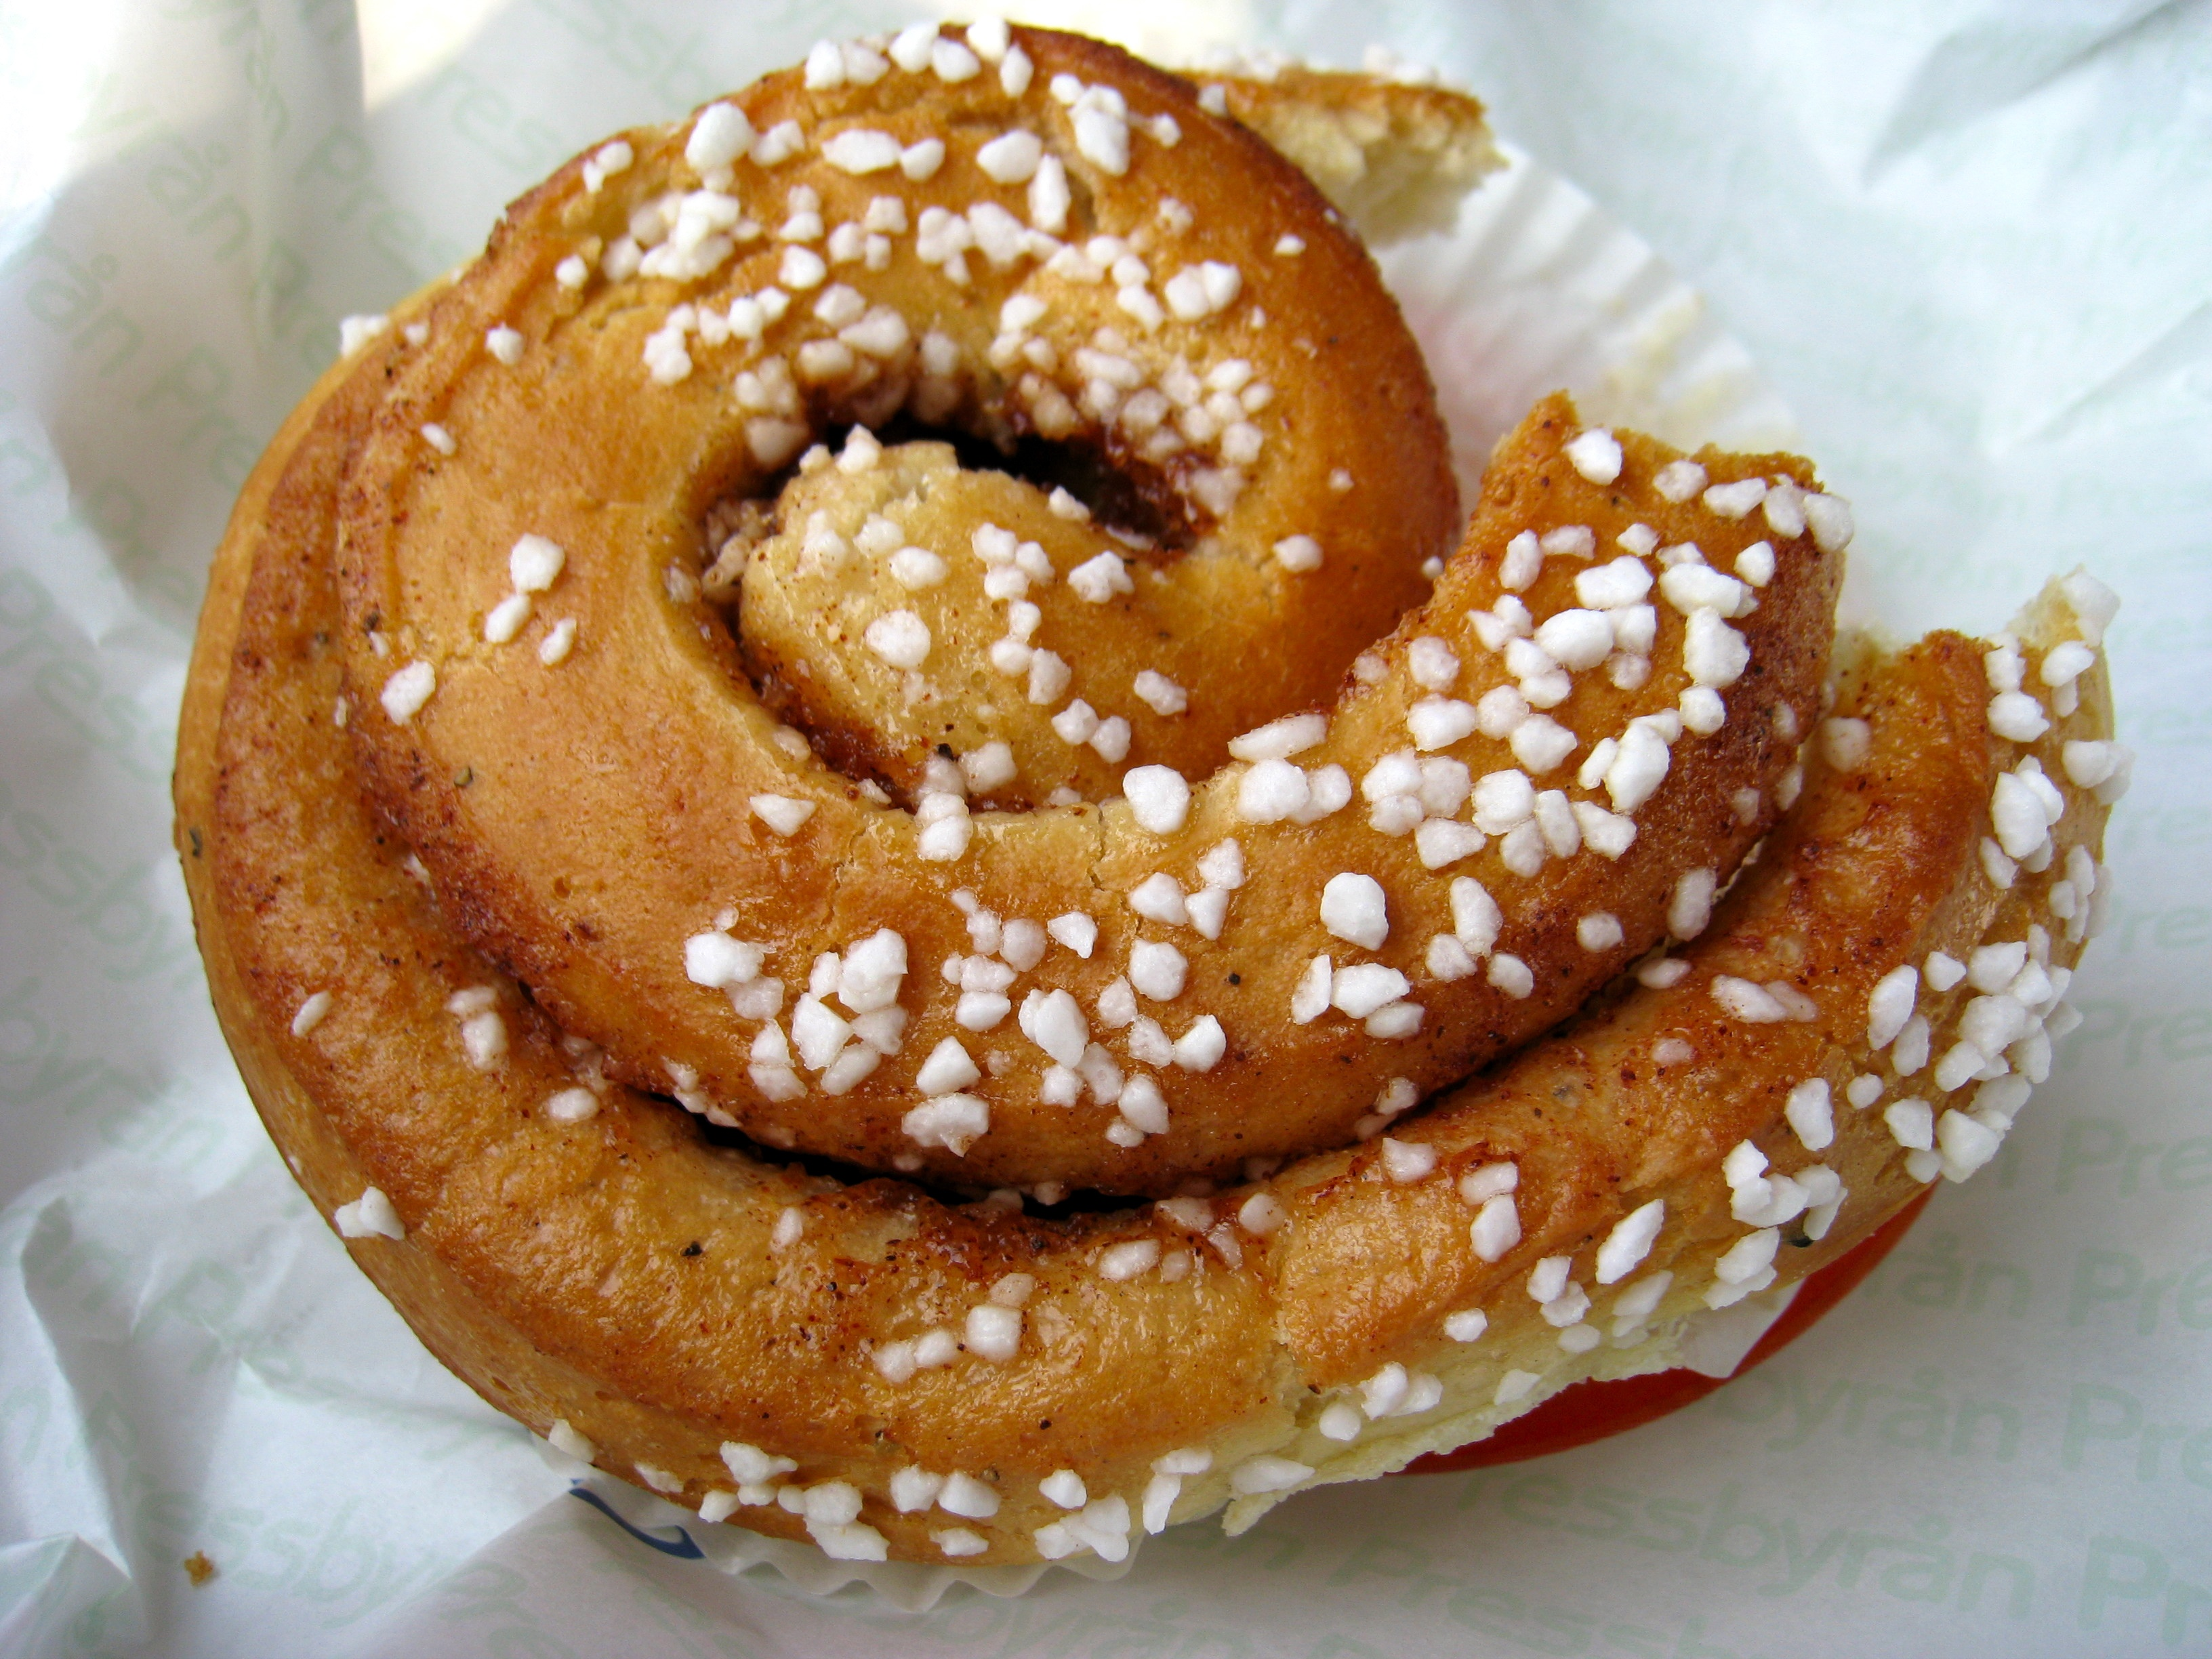 Kanelbullar photo by optische_taeuschung under CC BY-SA 2.0